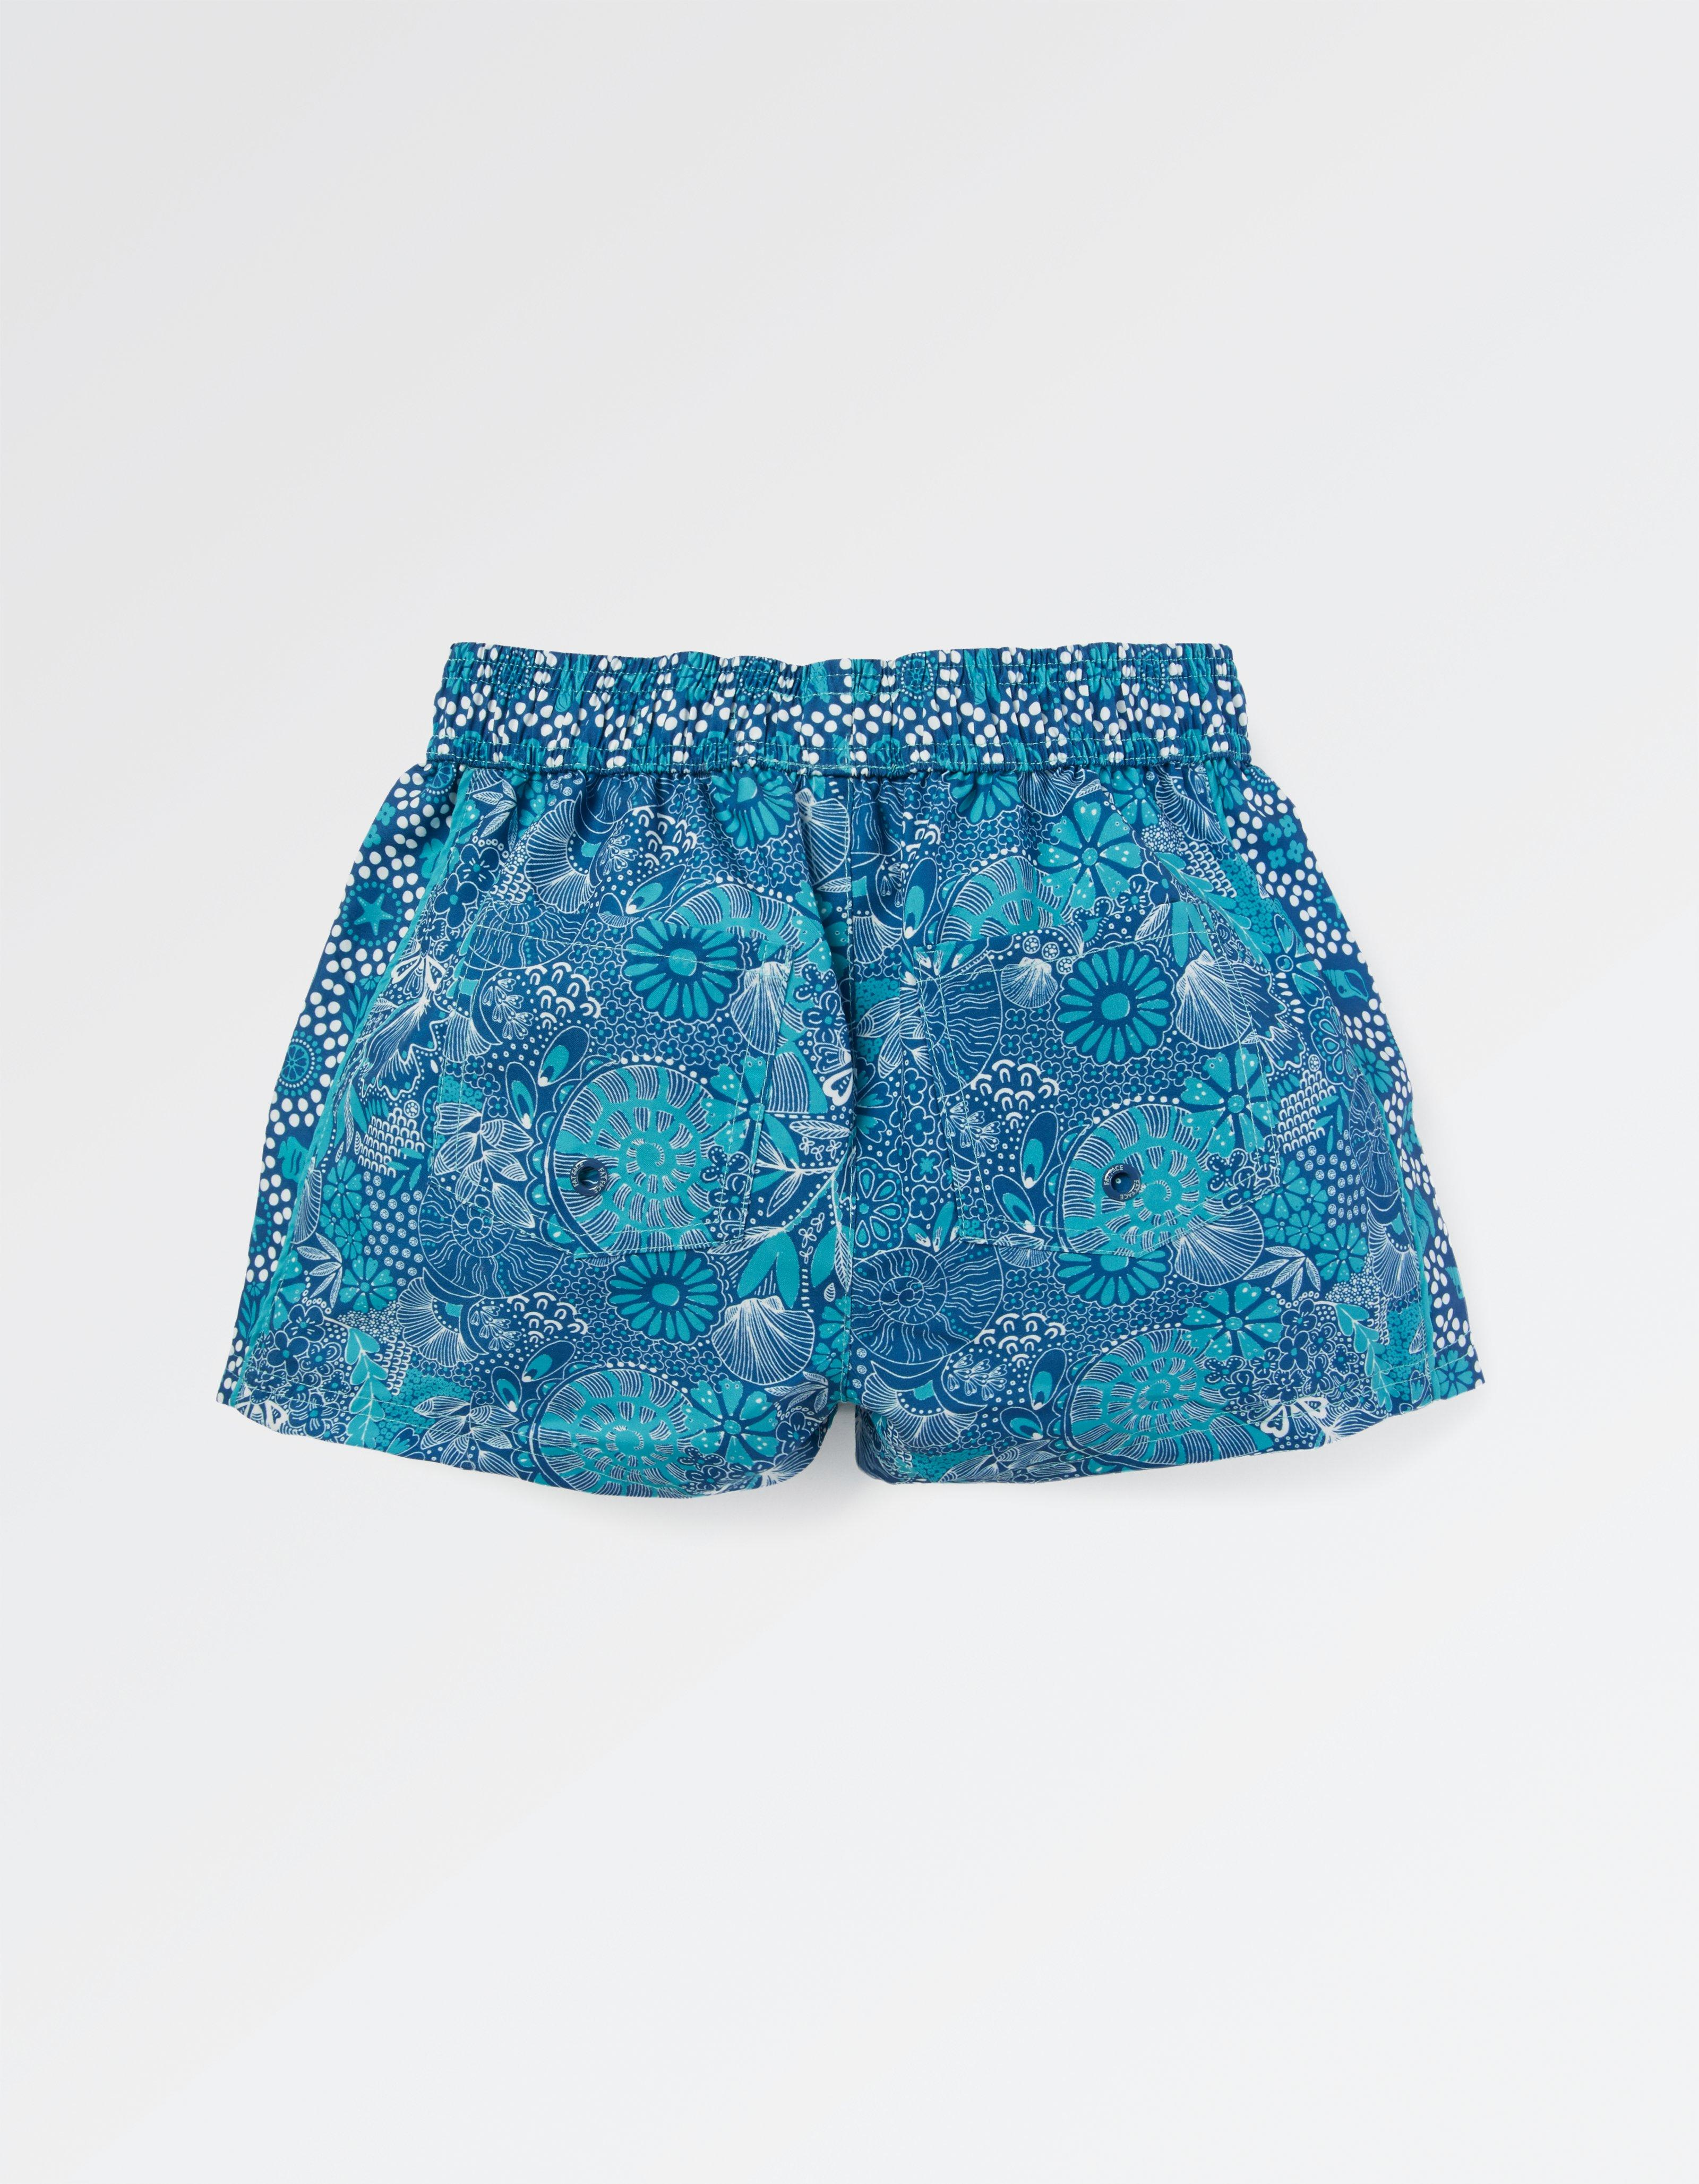 Sea Sketch Board Shorts